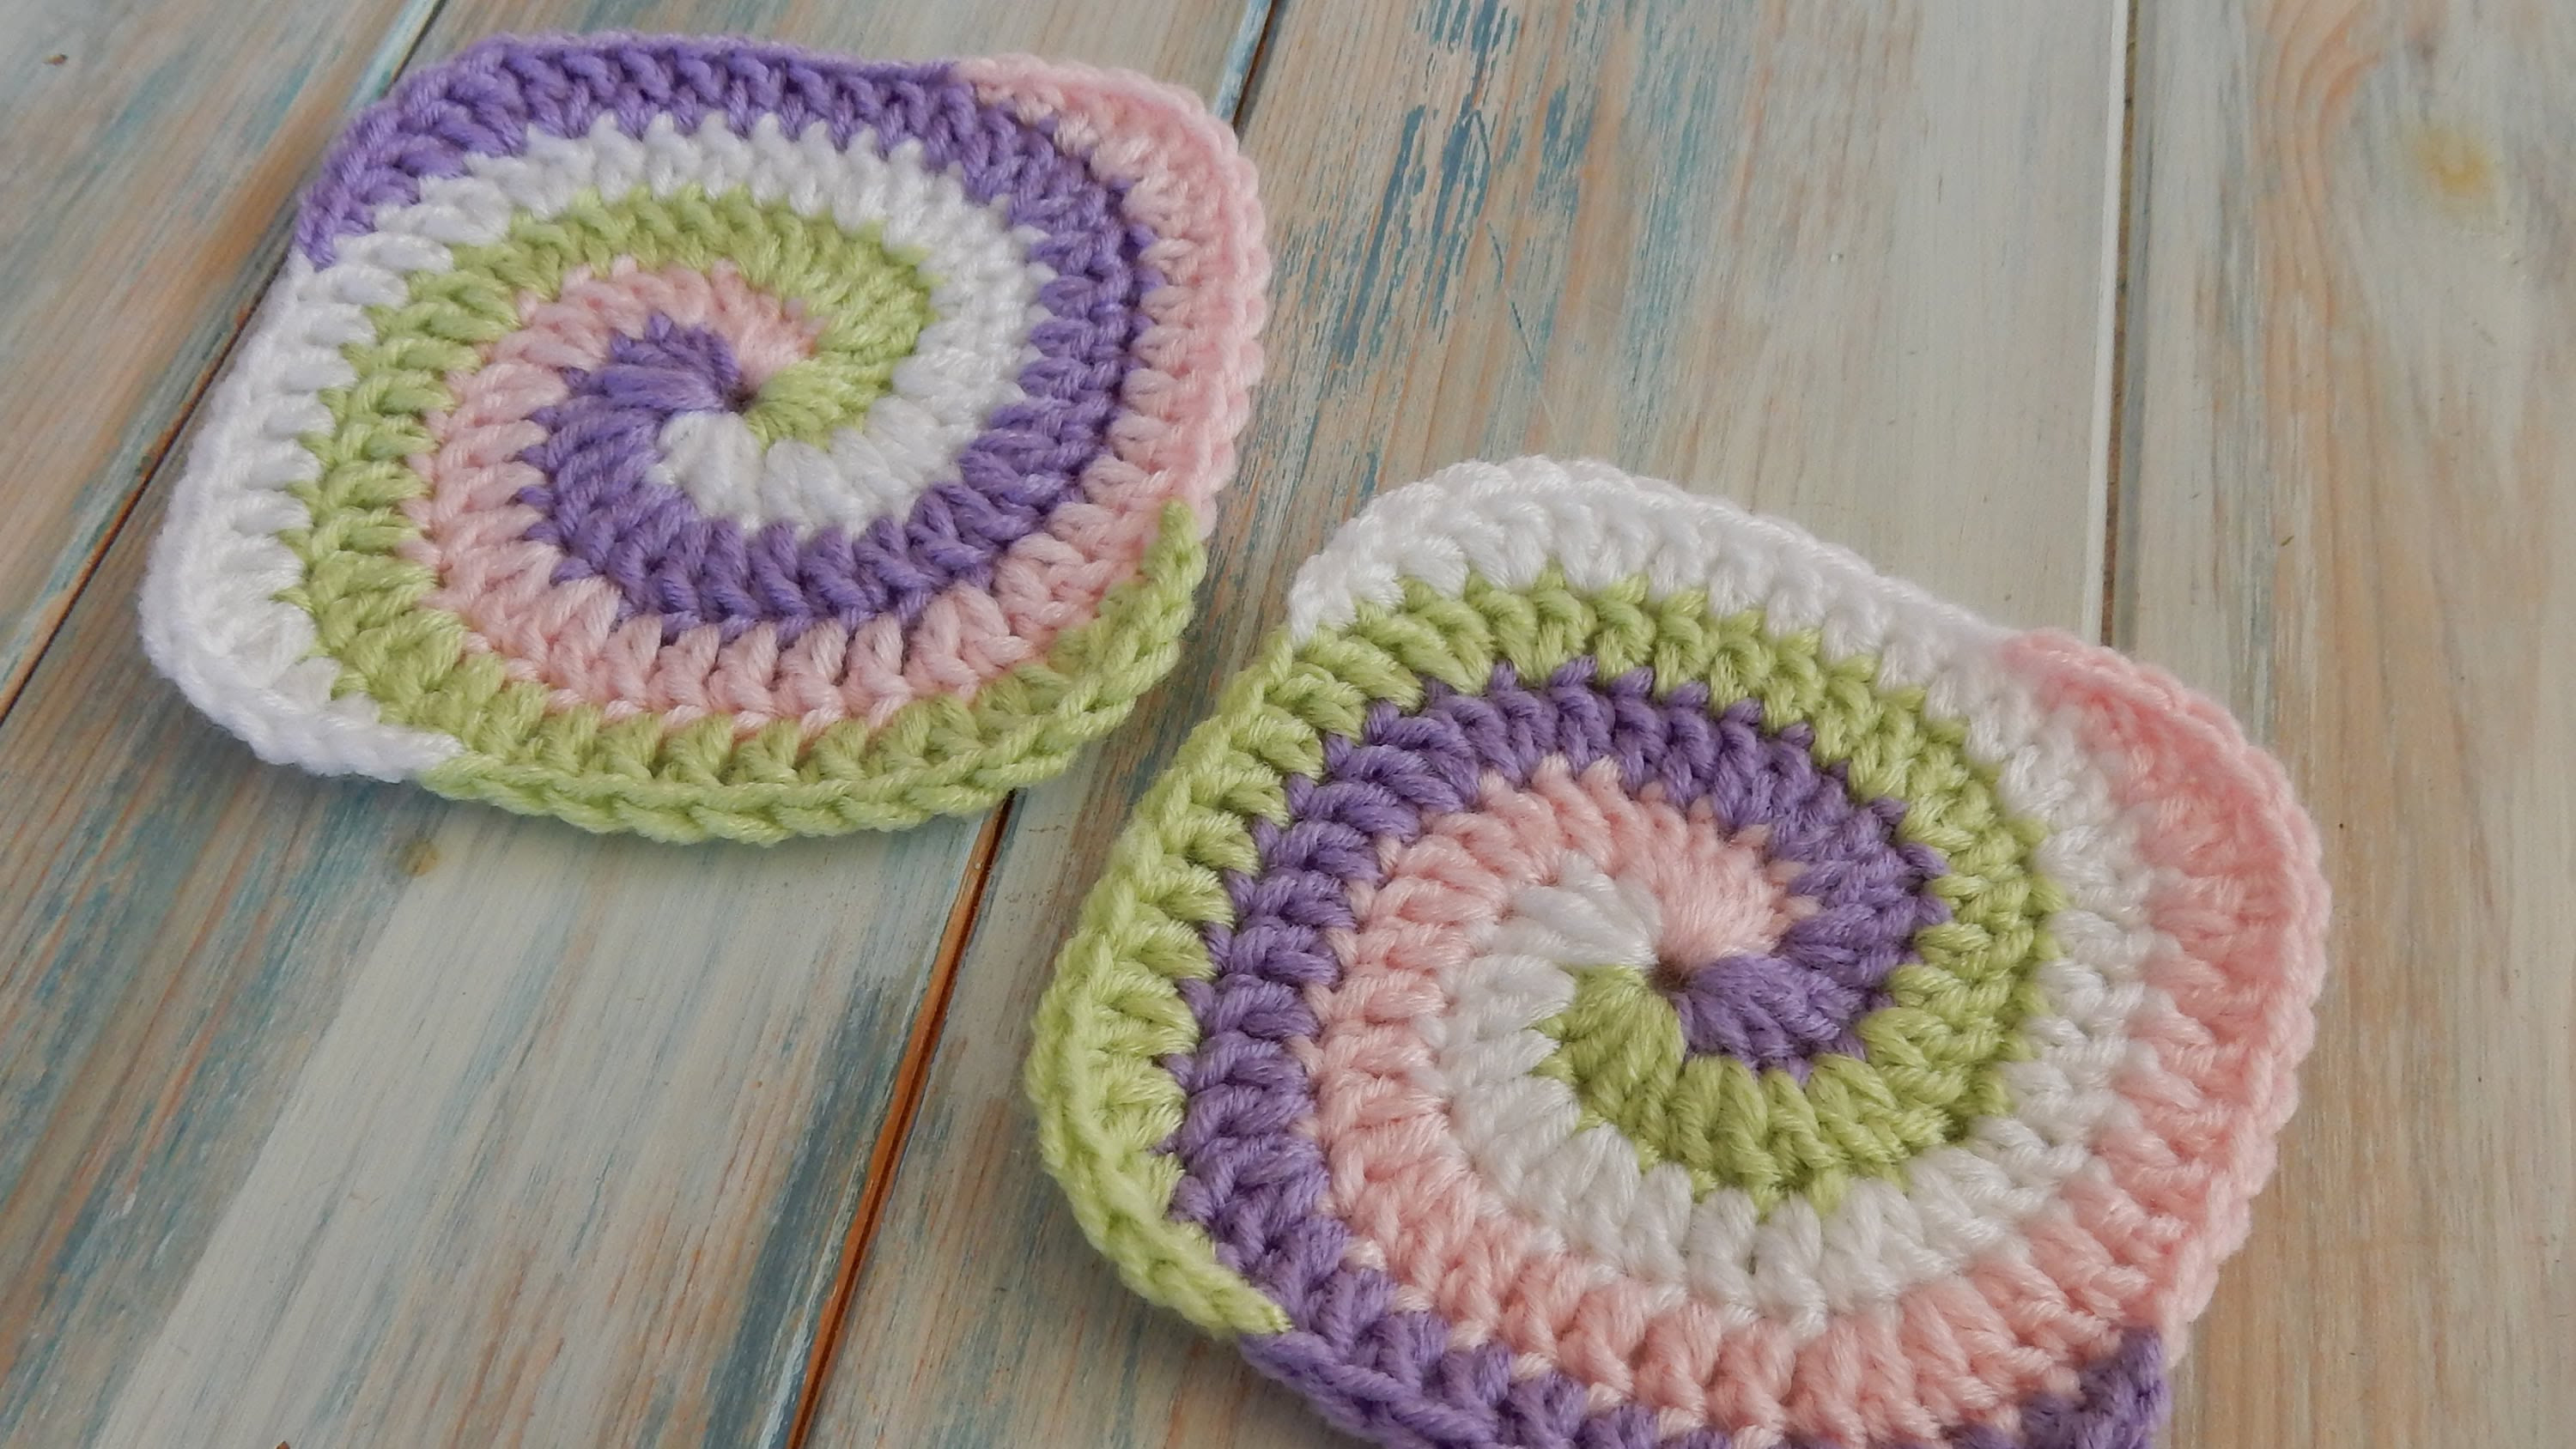 Beautiful How to Crochet A Spiral Granny Square Crochet for Beginners Granny Square Of Unique 49 Ideas Crochet for Beginners Granny Square